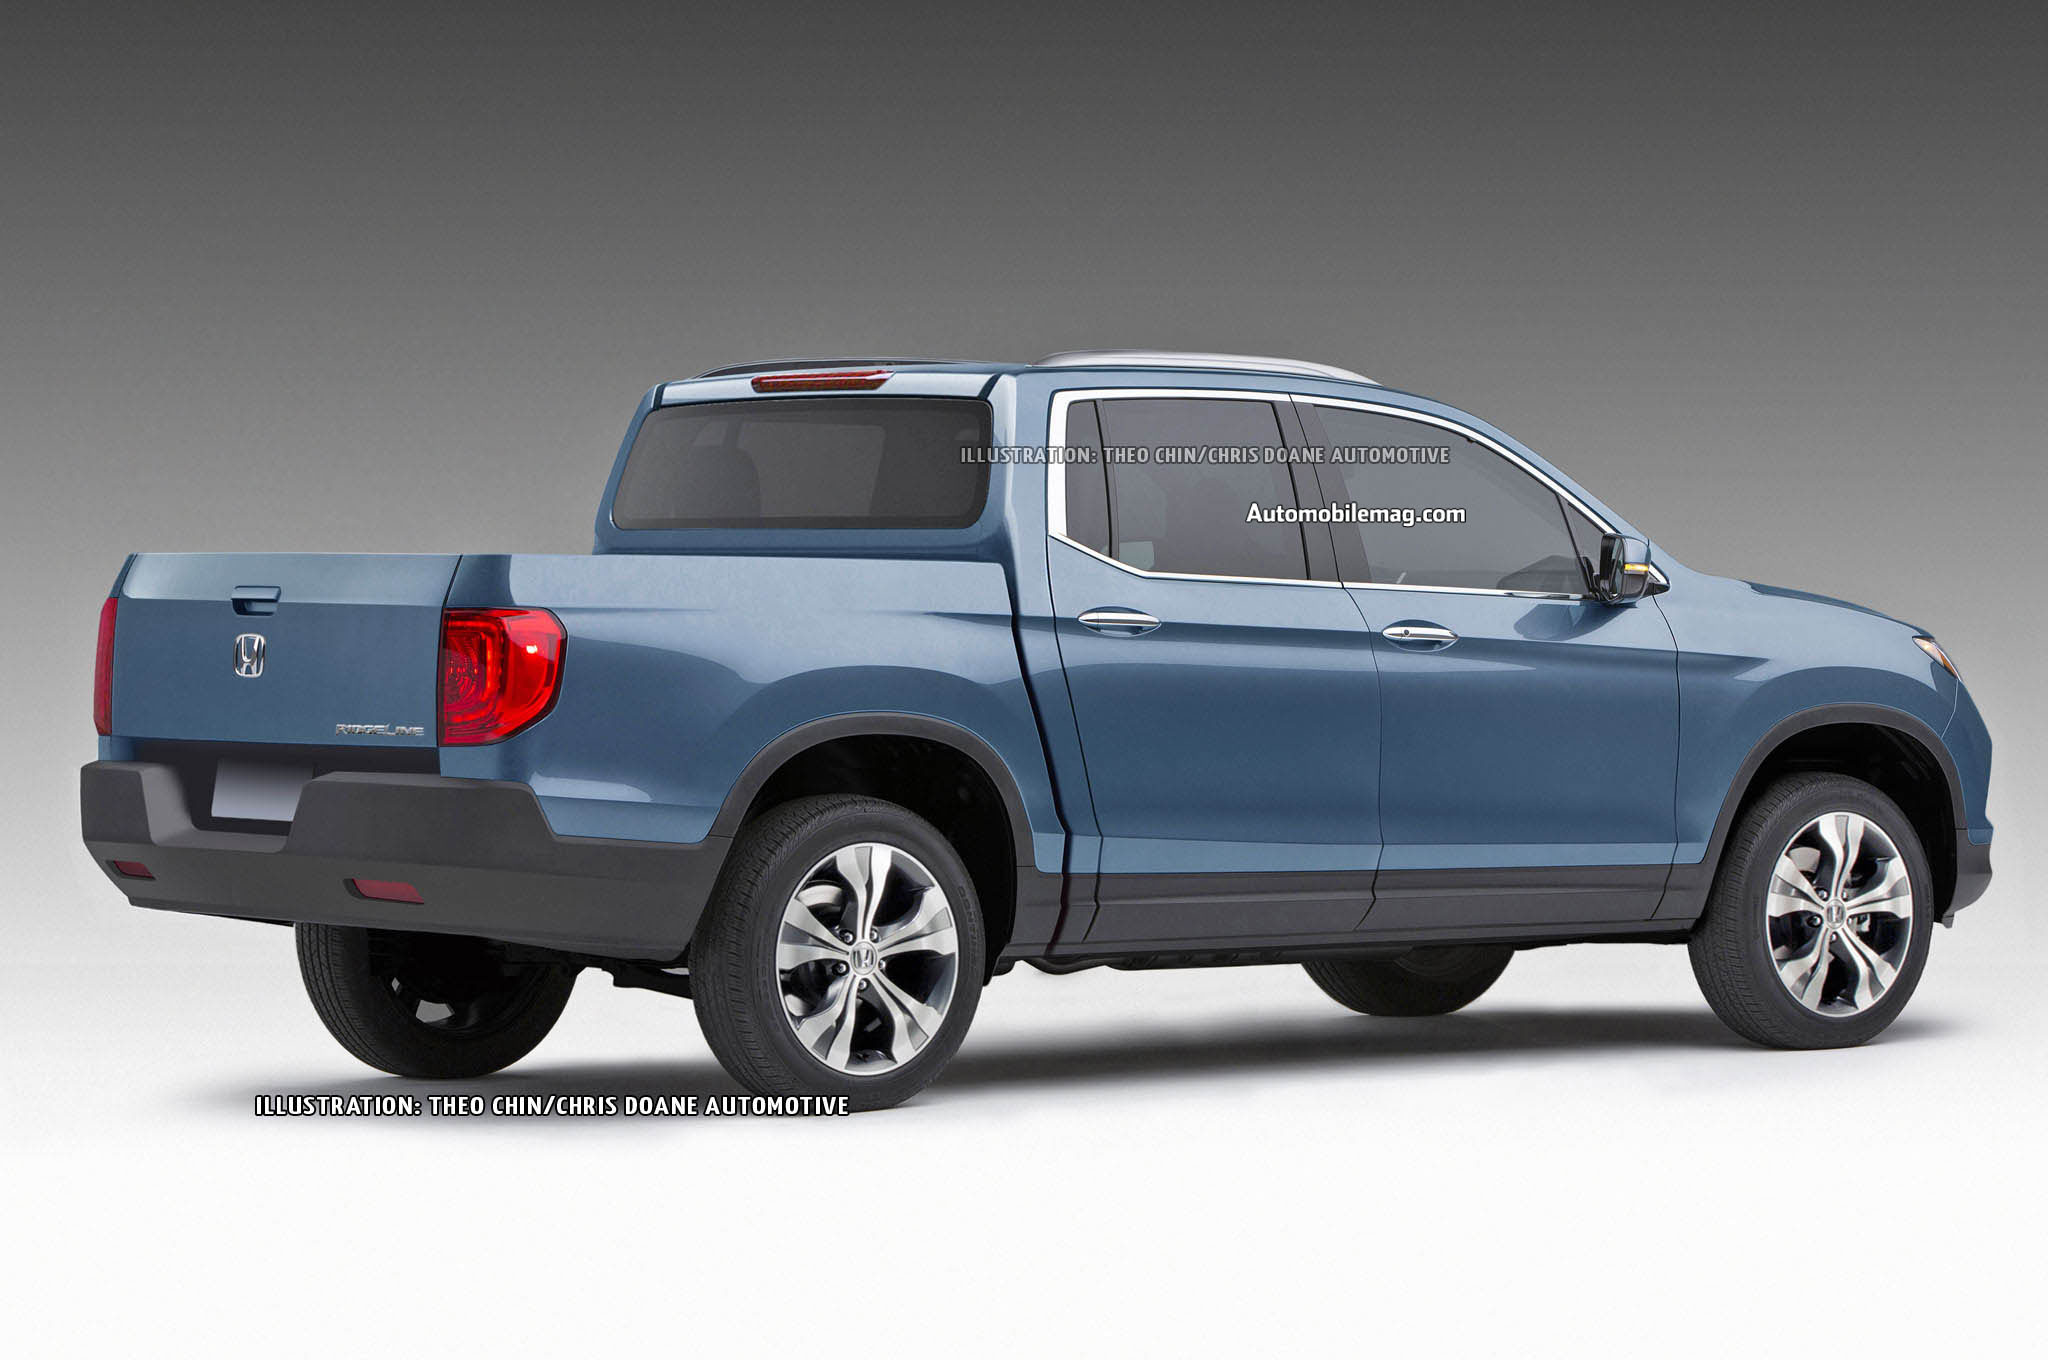 Honda Ridgeline Transmission Diagram Switch 2008 Wiring 2016 Previewed In Renderings Rh Automobilemag Com Problems Manual